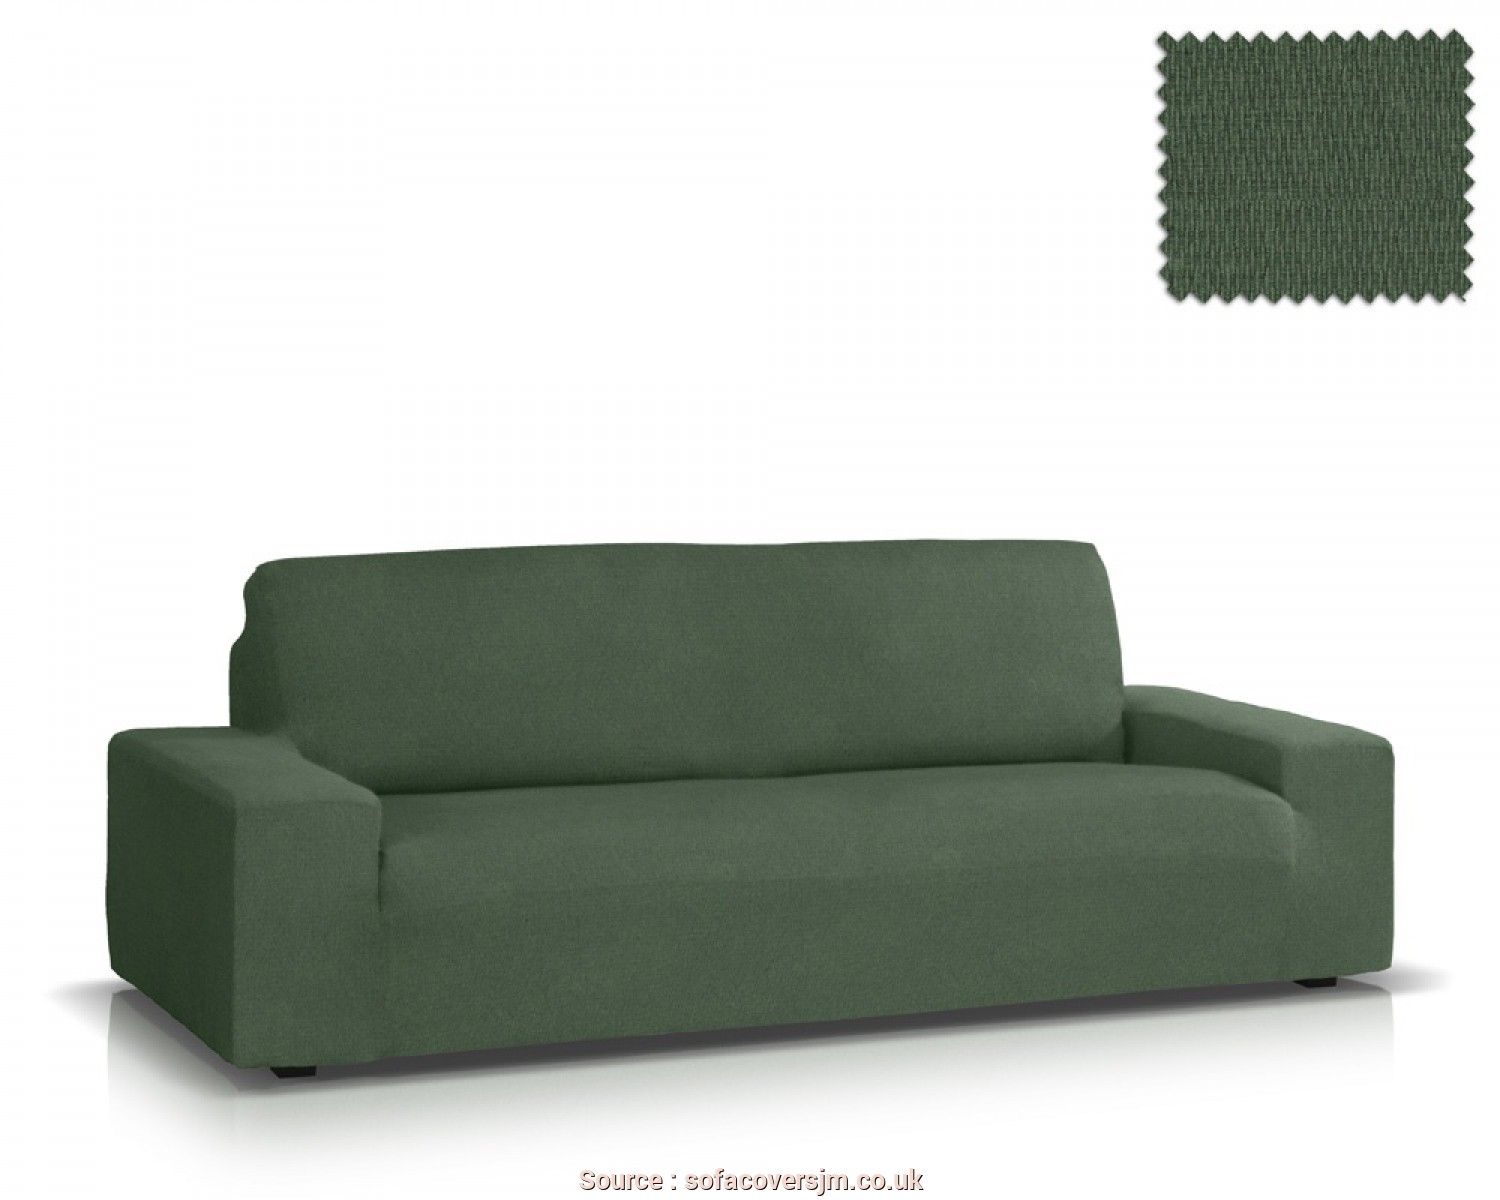 Copridivani Compatibili Ikea, Delizioso Stretch Sofa Cover Kivik Model Nervion